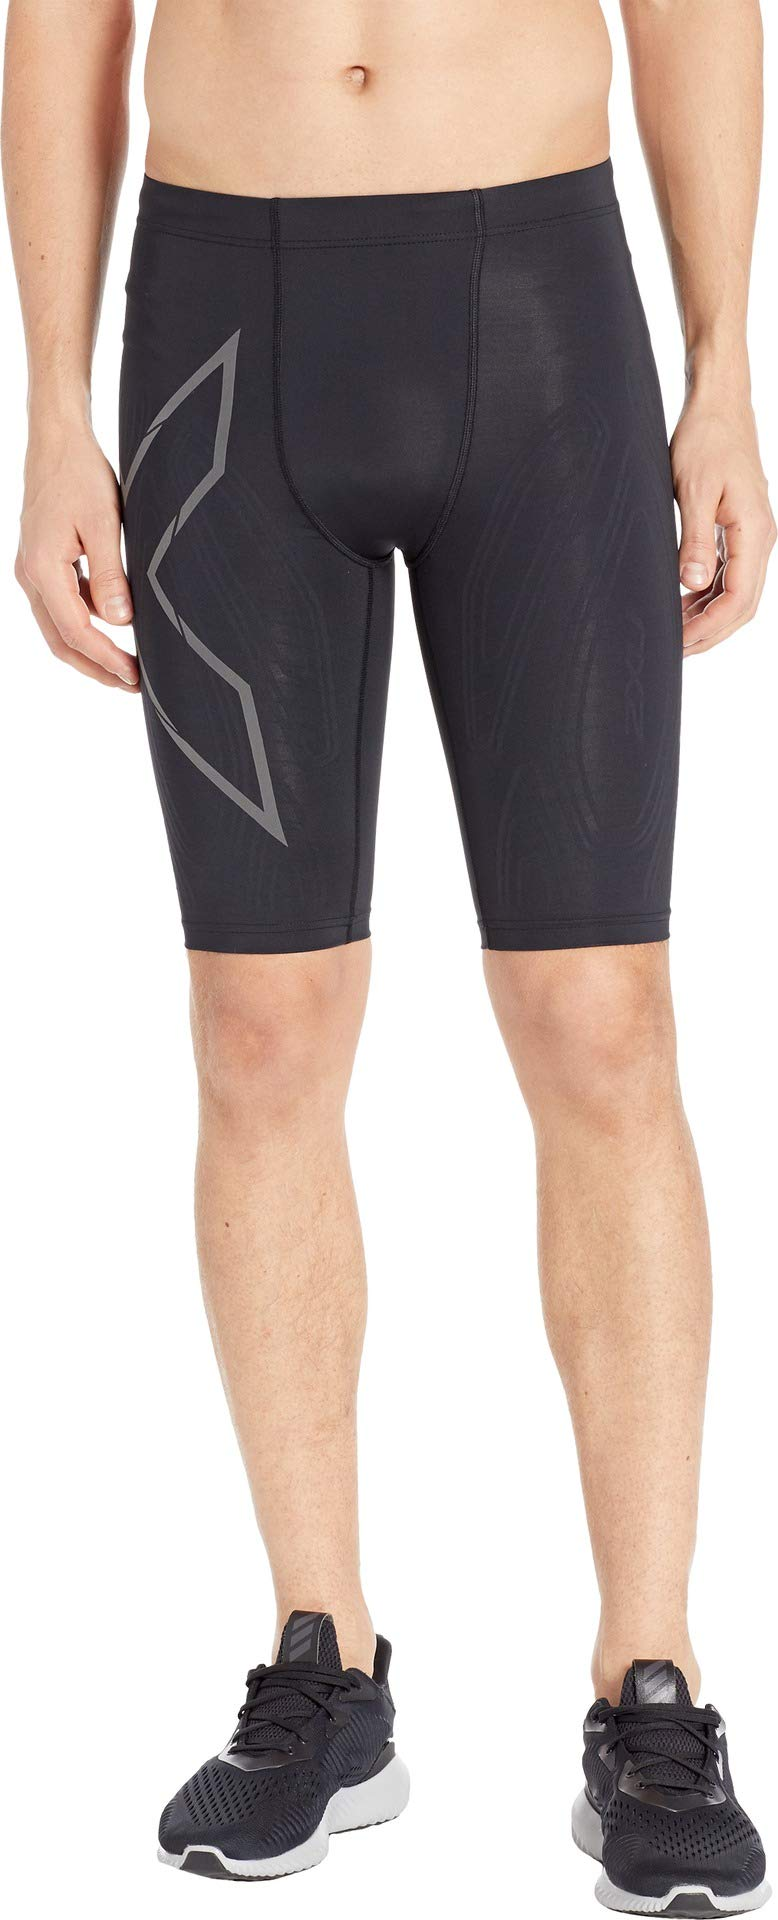 2XU MCS Run Compression Short, Black/Black Reflective, Medium